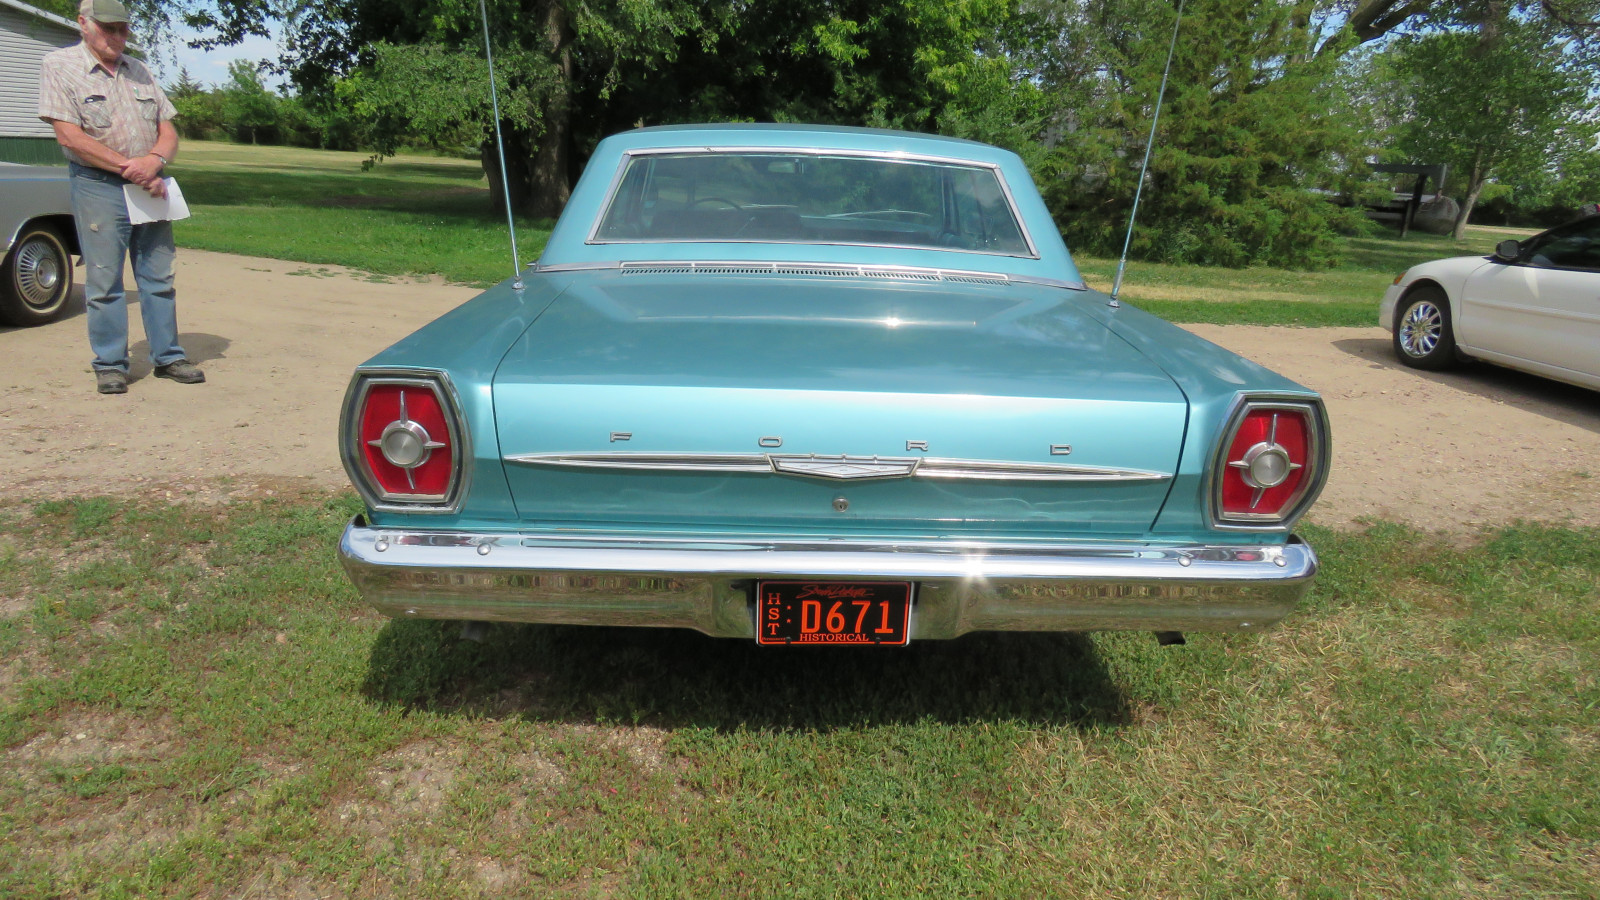 1965 Ford Galaxie 500 4dr HT - Image 5